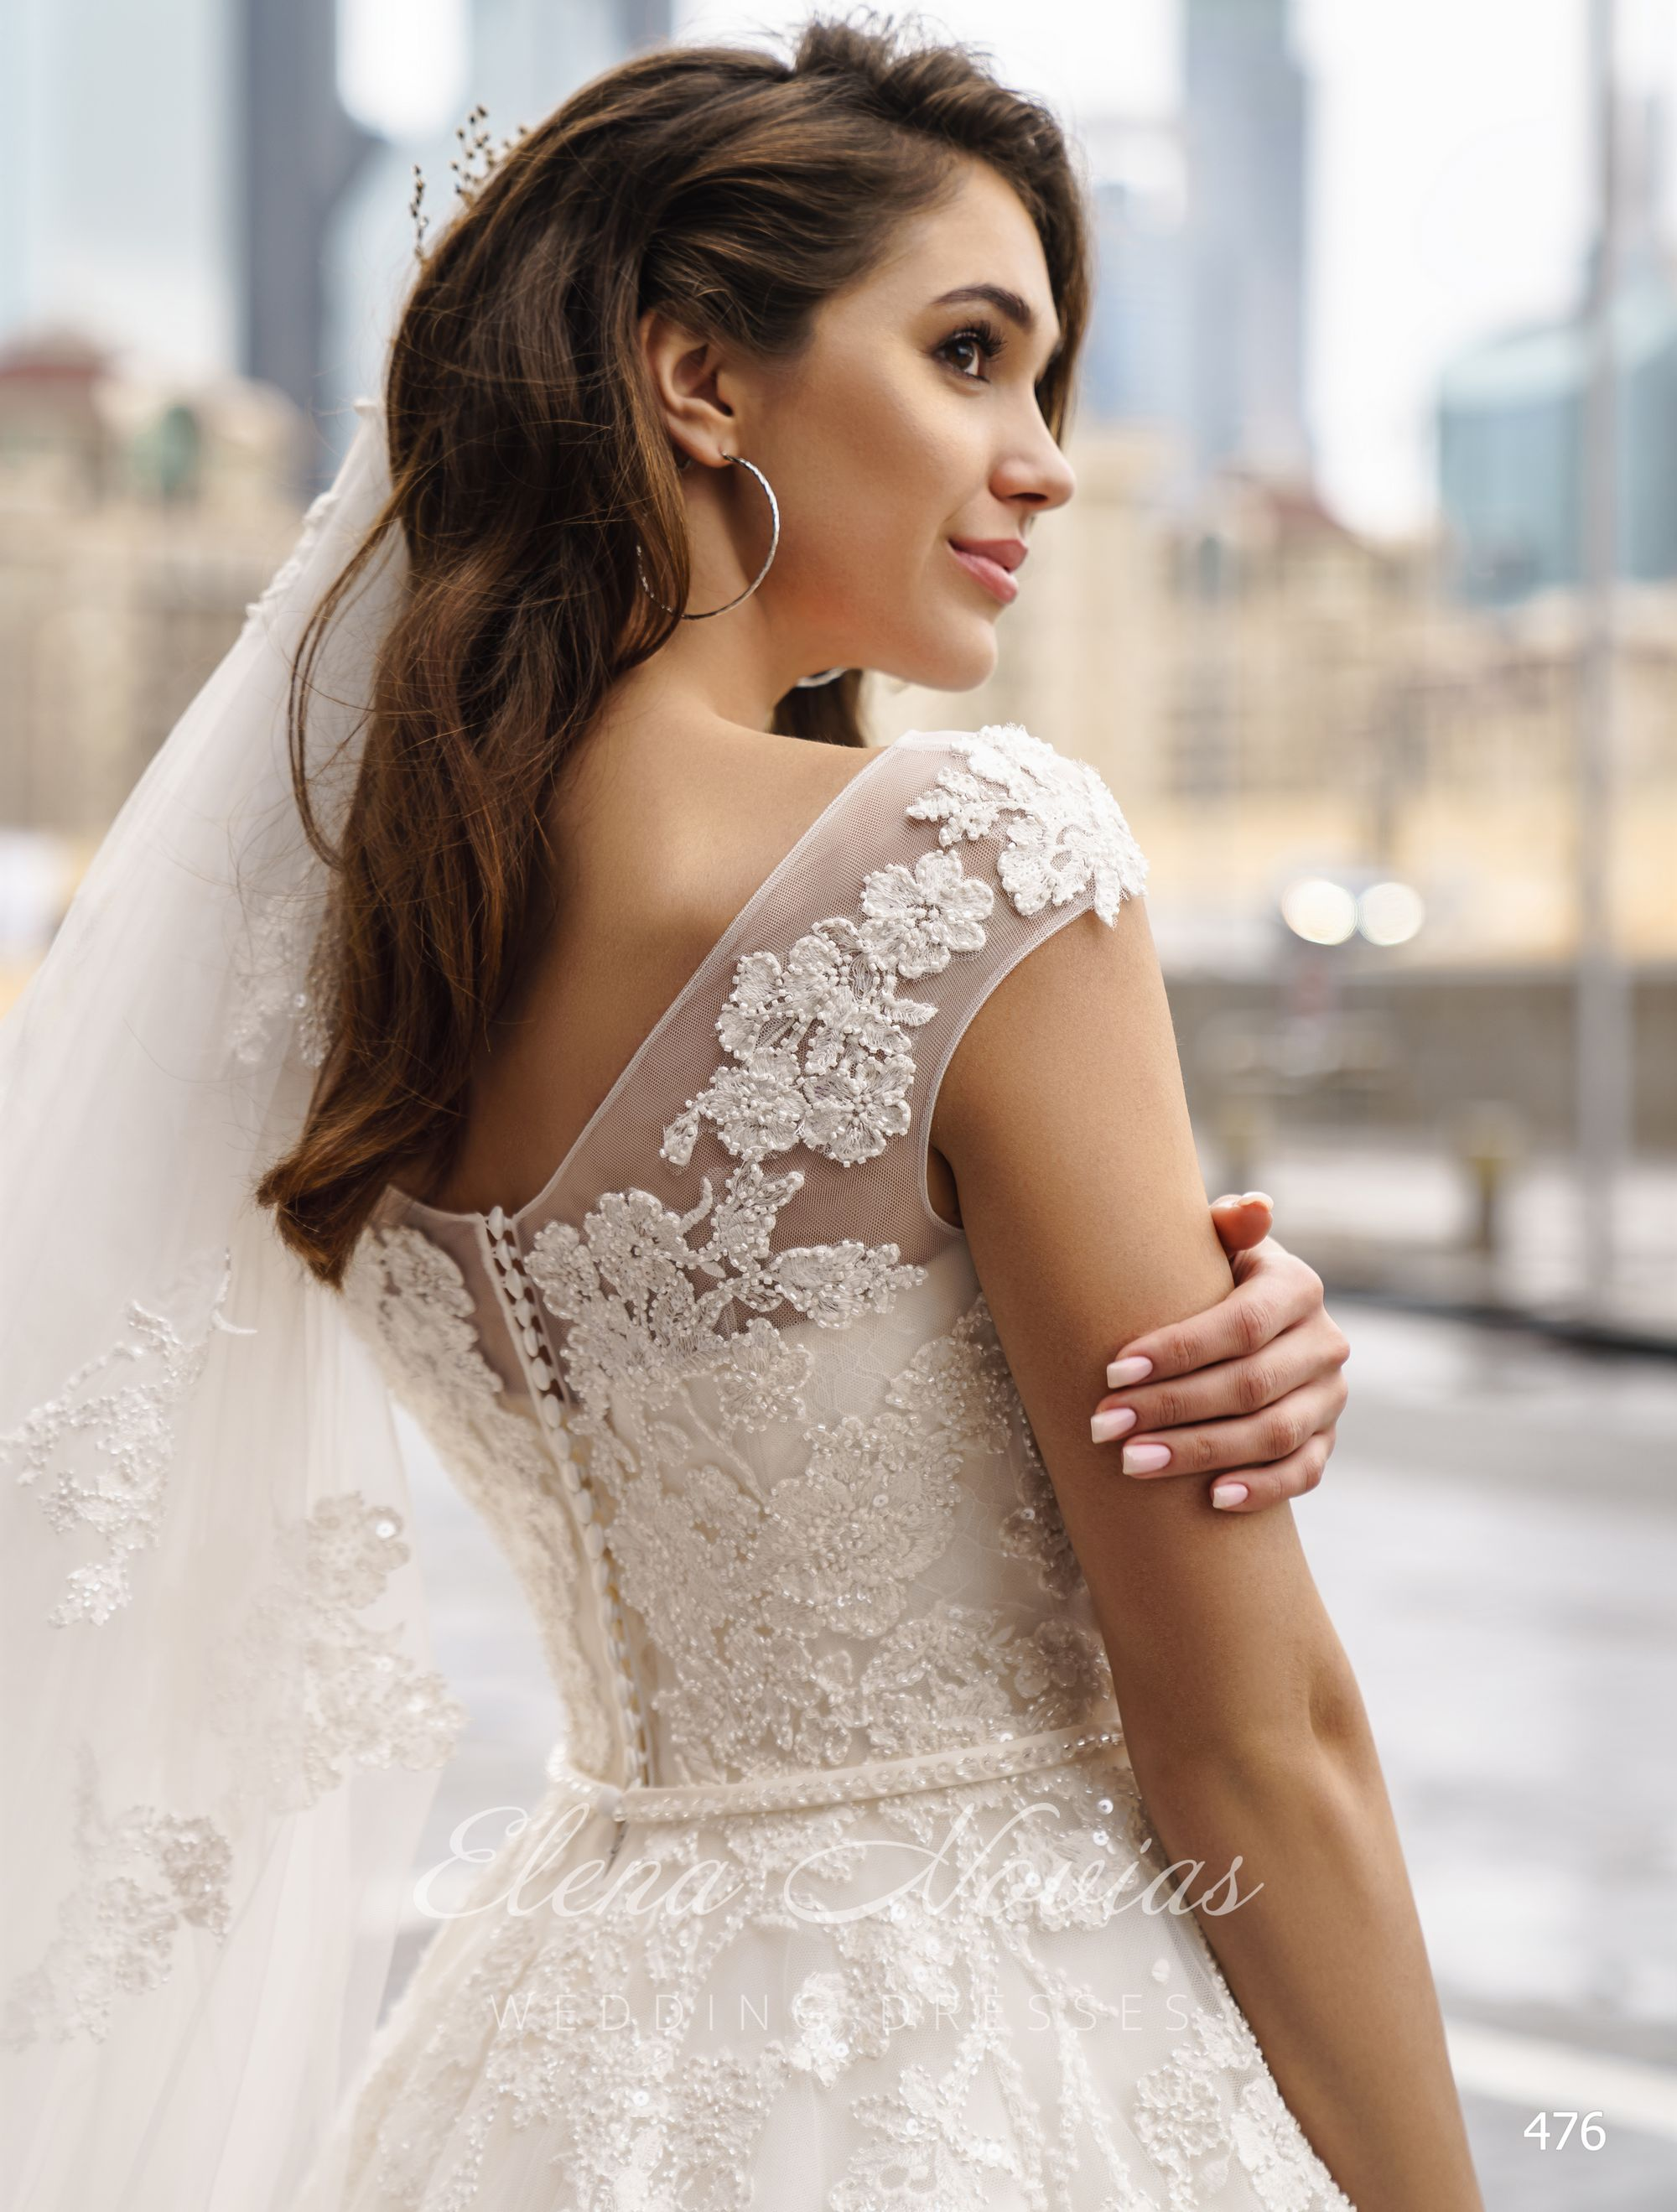 Wedding dresses 476 4